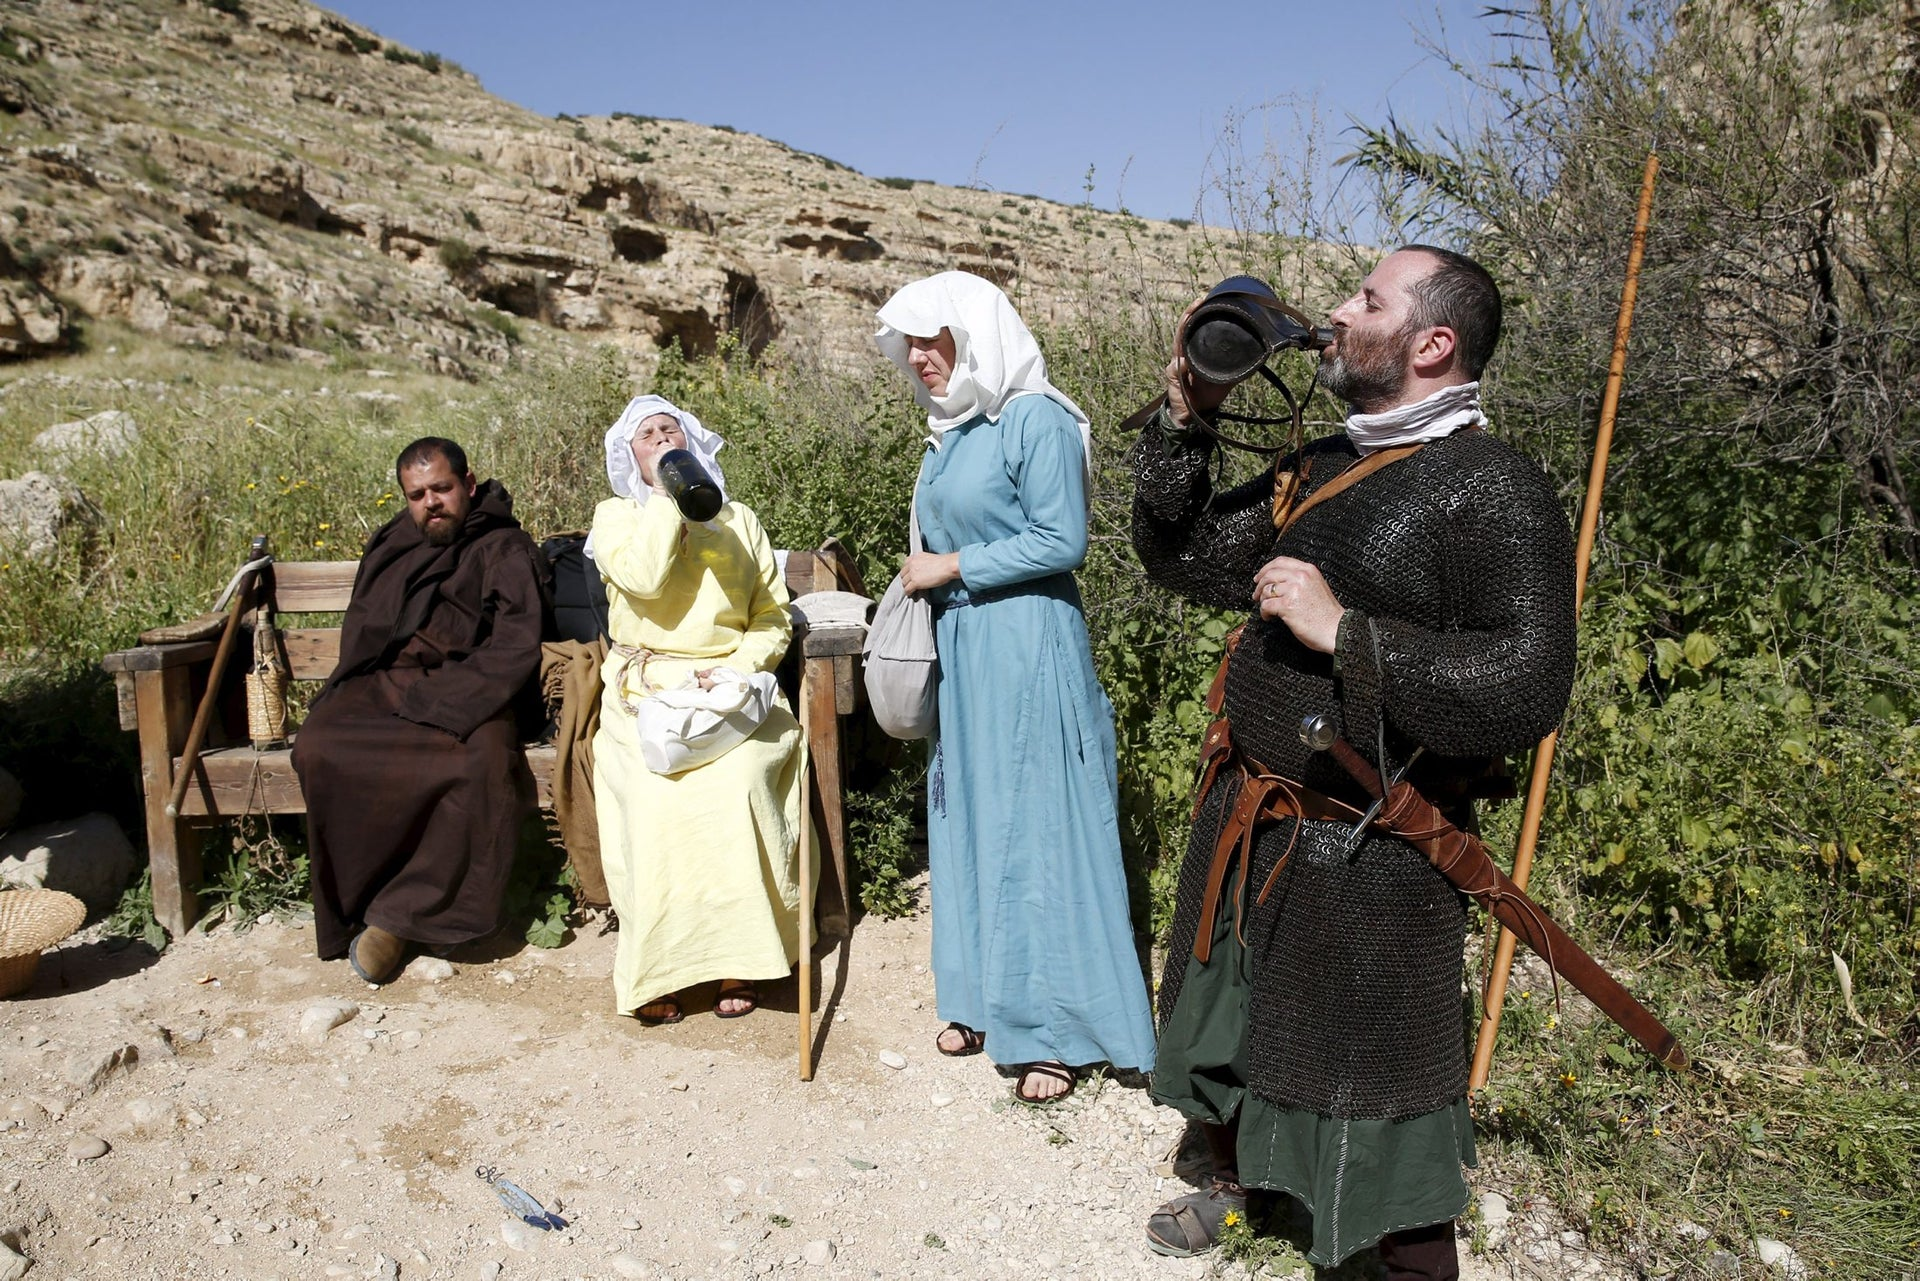 History enthusiasts dressed in costumes rest after a march during an event to relive the experiences of pilgrims who travelled to Jerusalem during medieval times, at a historical fortress near the settlement of Ma'ale Adumim in the West Bank, east of Jerusalem, March 11, 2016.